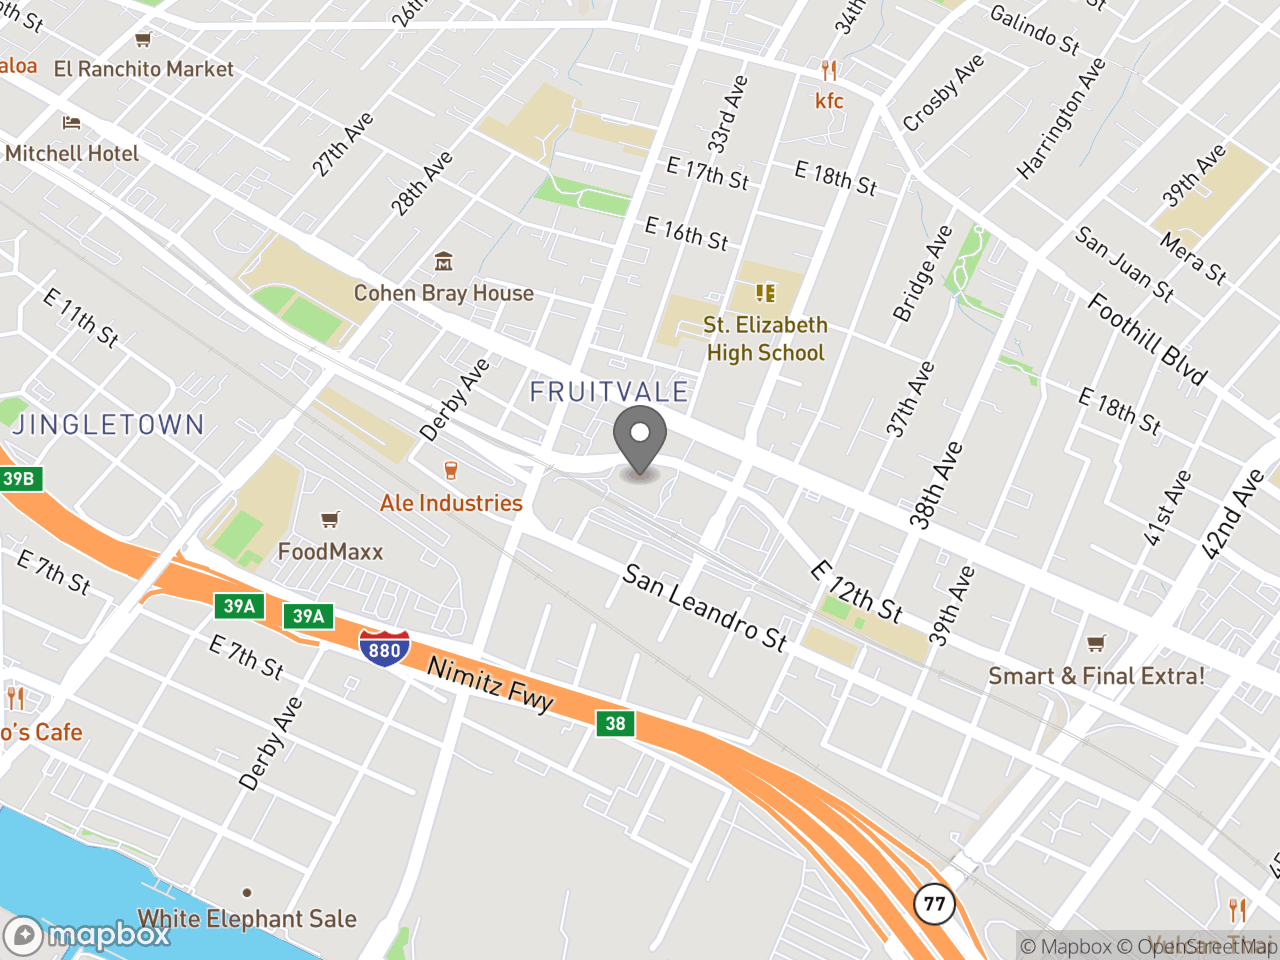 Map image for 3-Year Paving Plan at Fruitvale Unity NCPC, located at 3301 E 12th St in Oakland, CA 94601